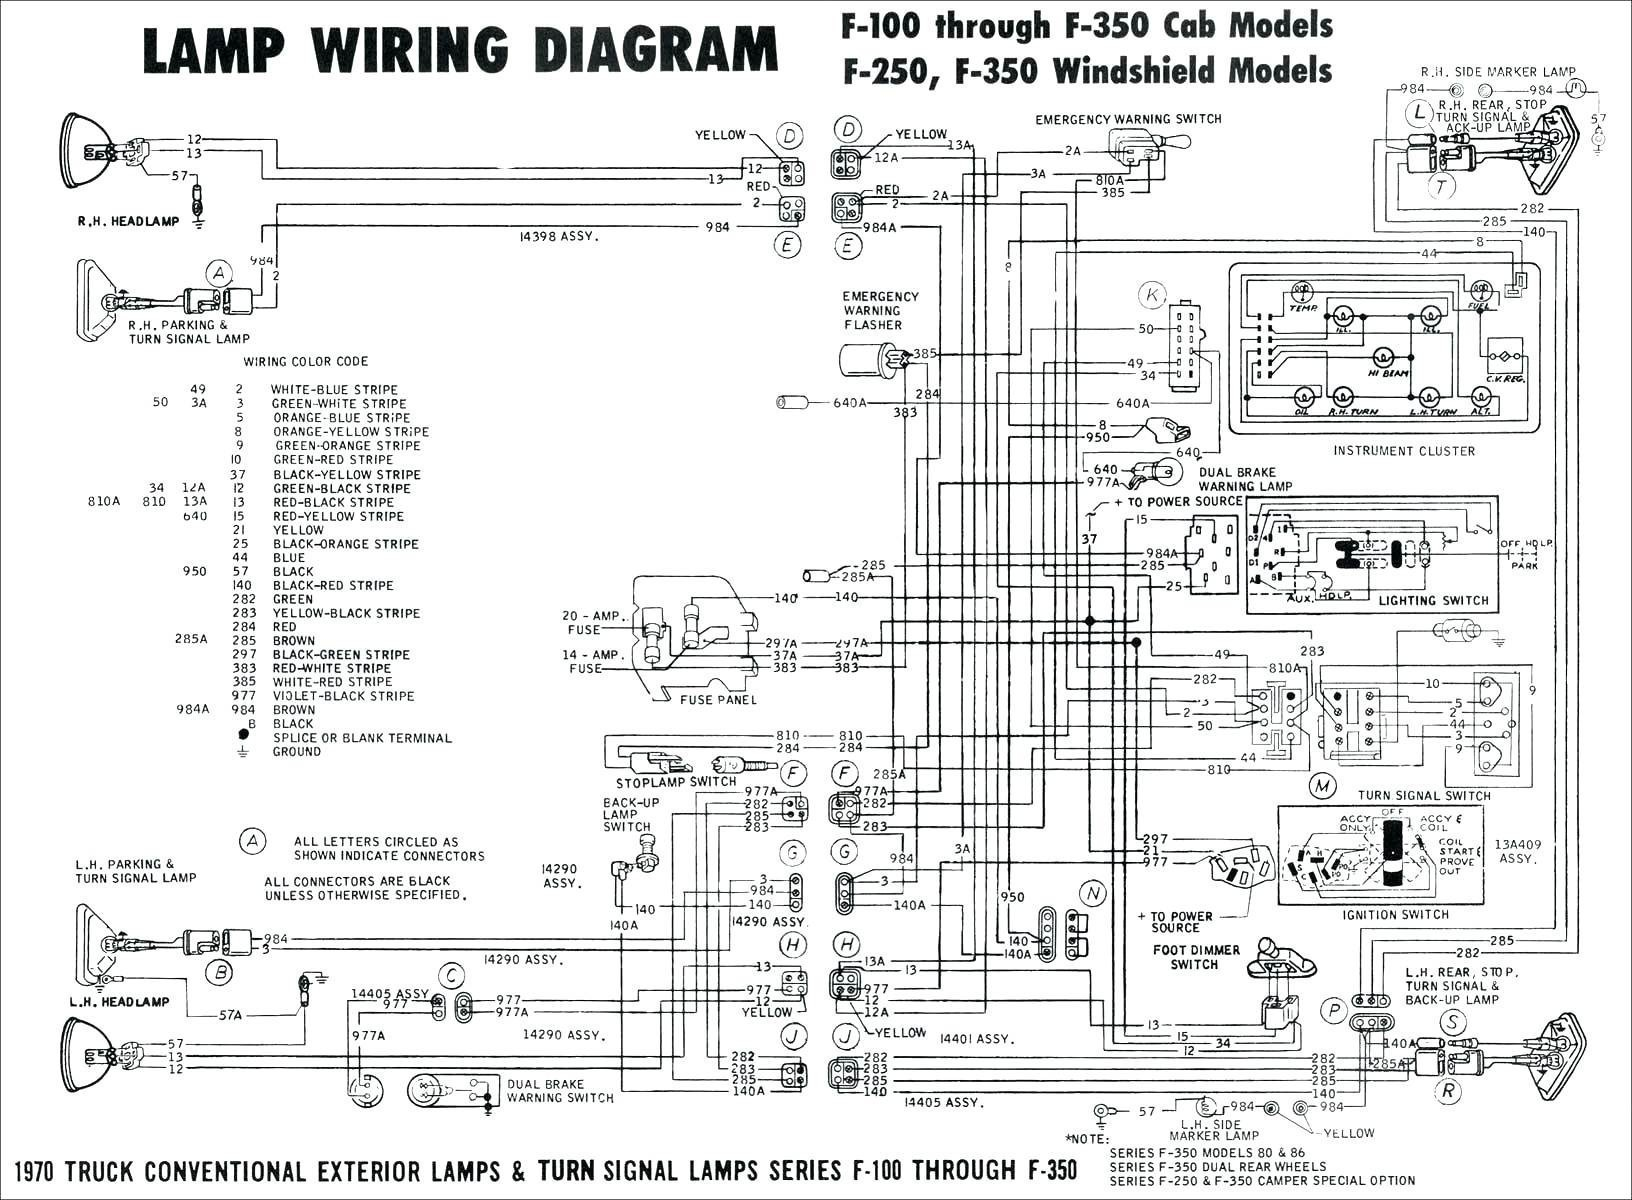 Husqvarna Rz5424 Wiring Diagram from wholefoodsonabudget.com